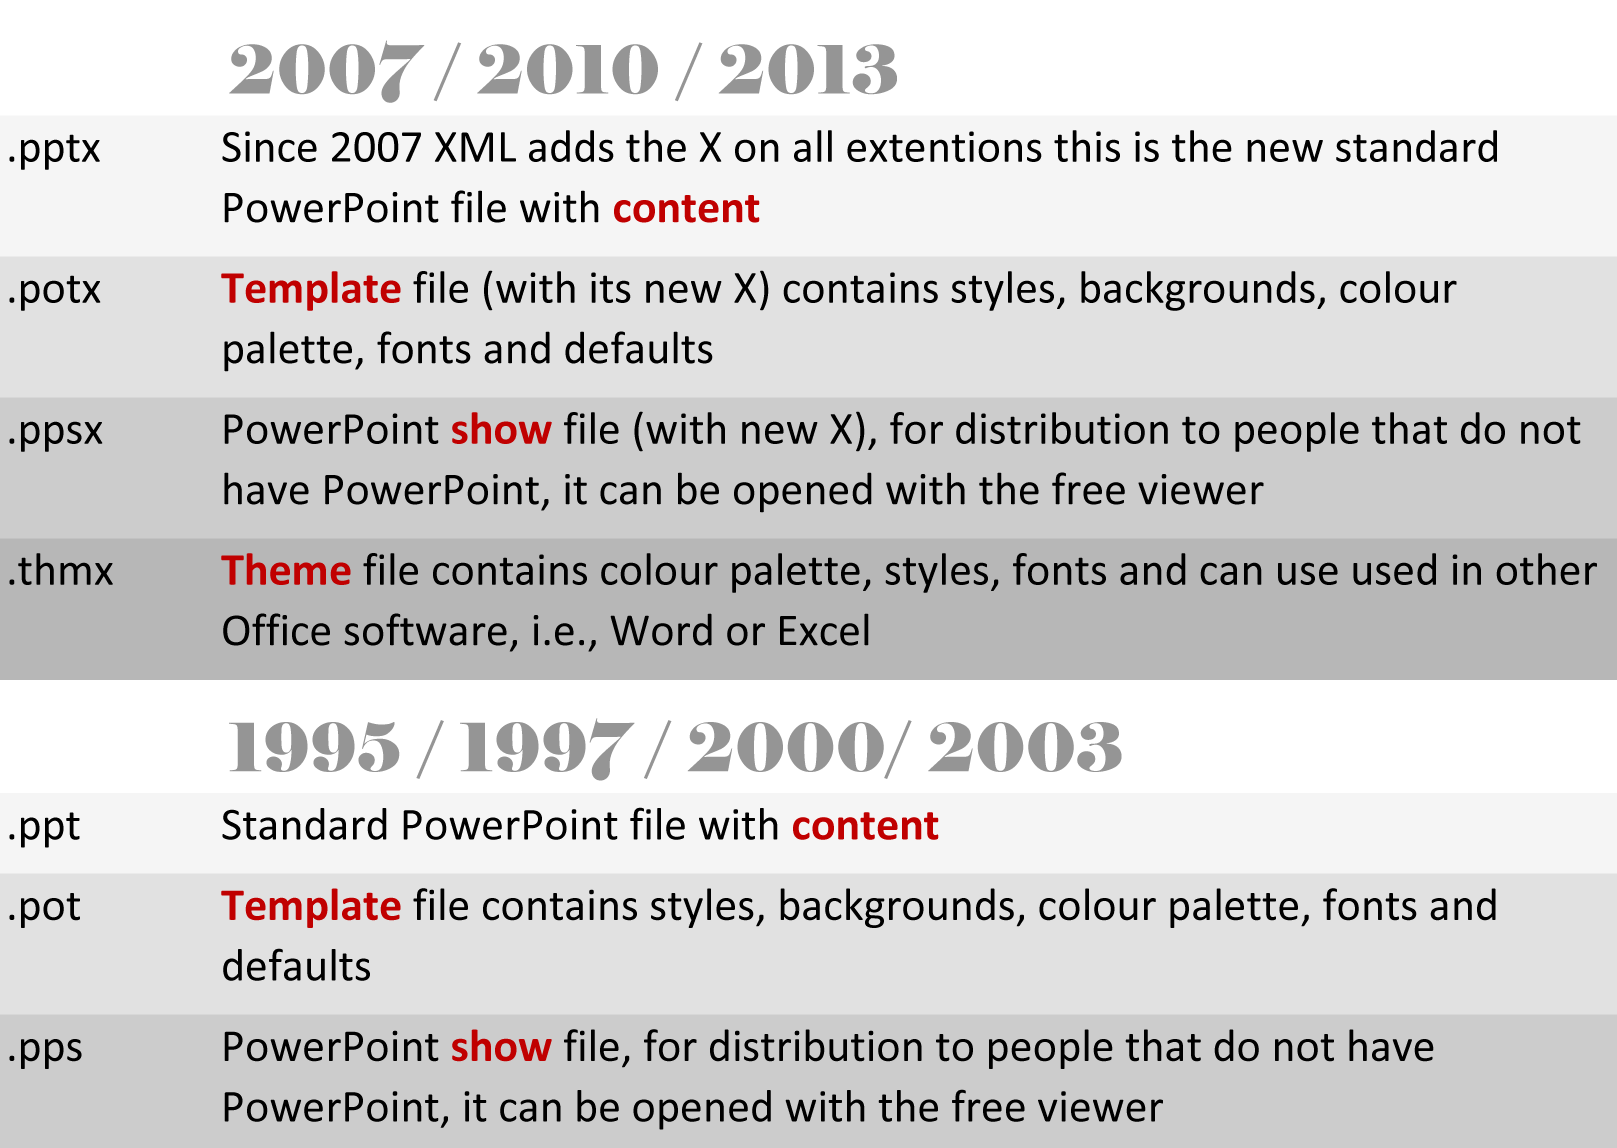 powerpoint file name extensions — ppt, pot, pps, pptx, potx, ppsx, Powerpoint templates